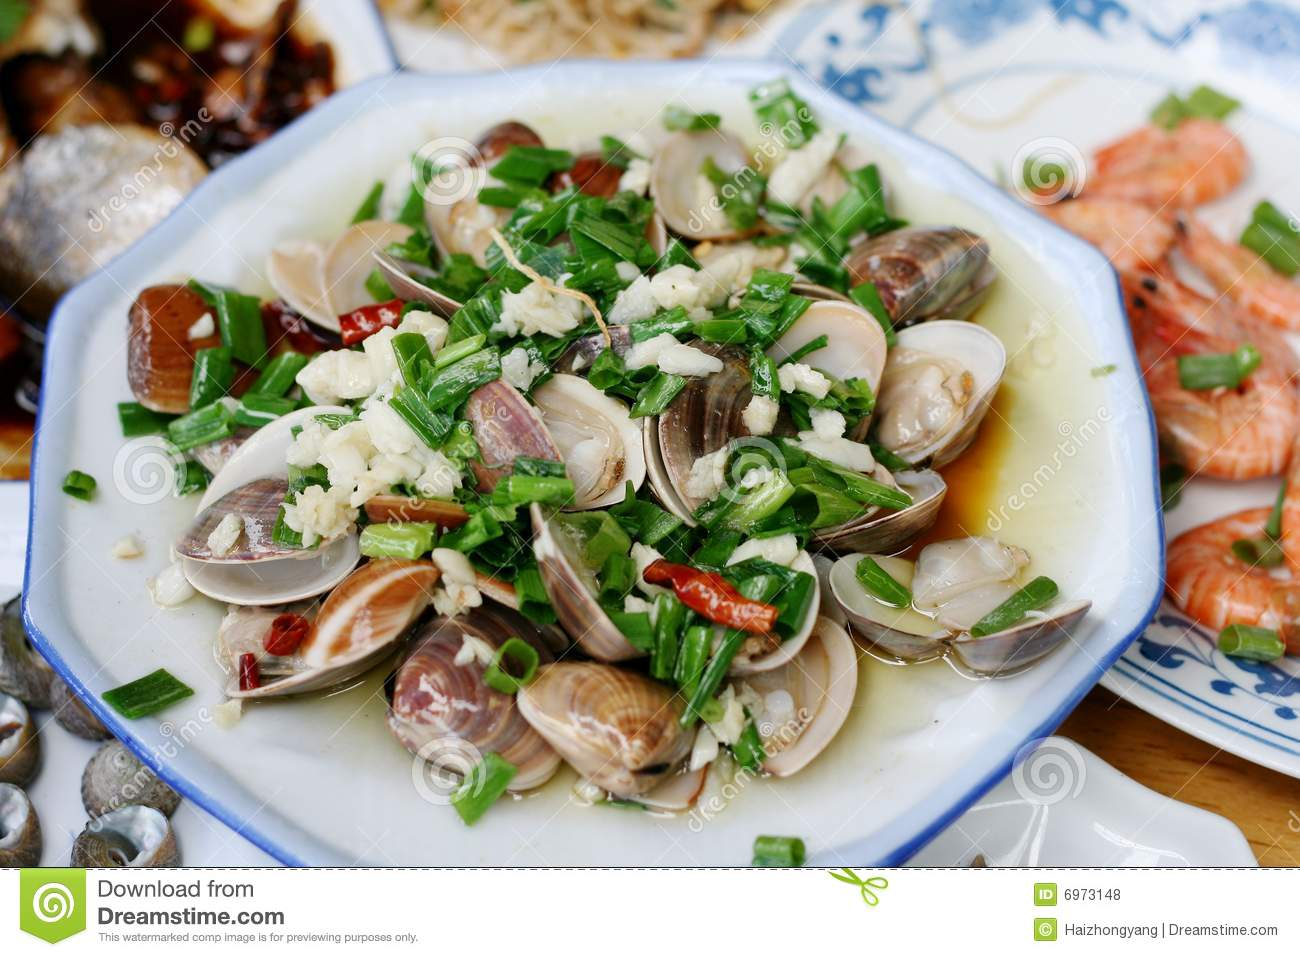 Chinese cuisine royalty free stock photos image 6973148 for Ajk chinese cuisine